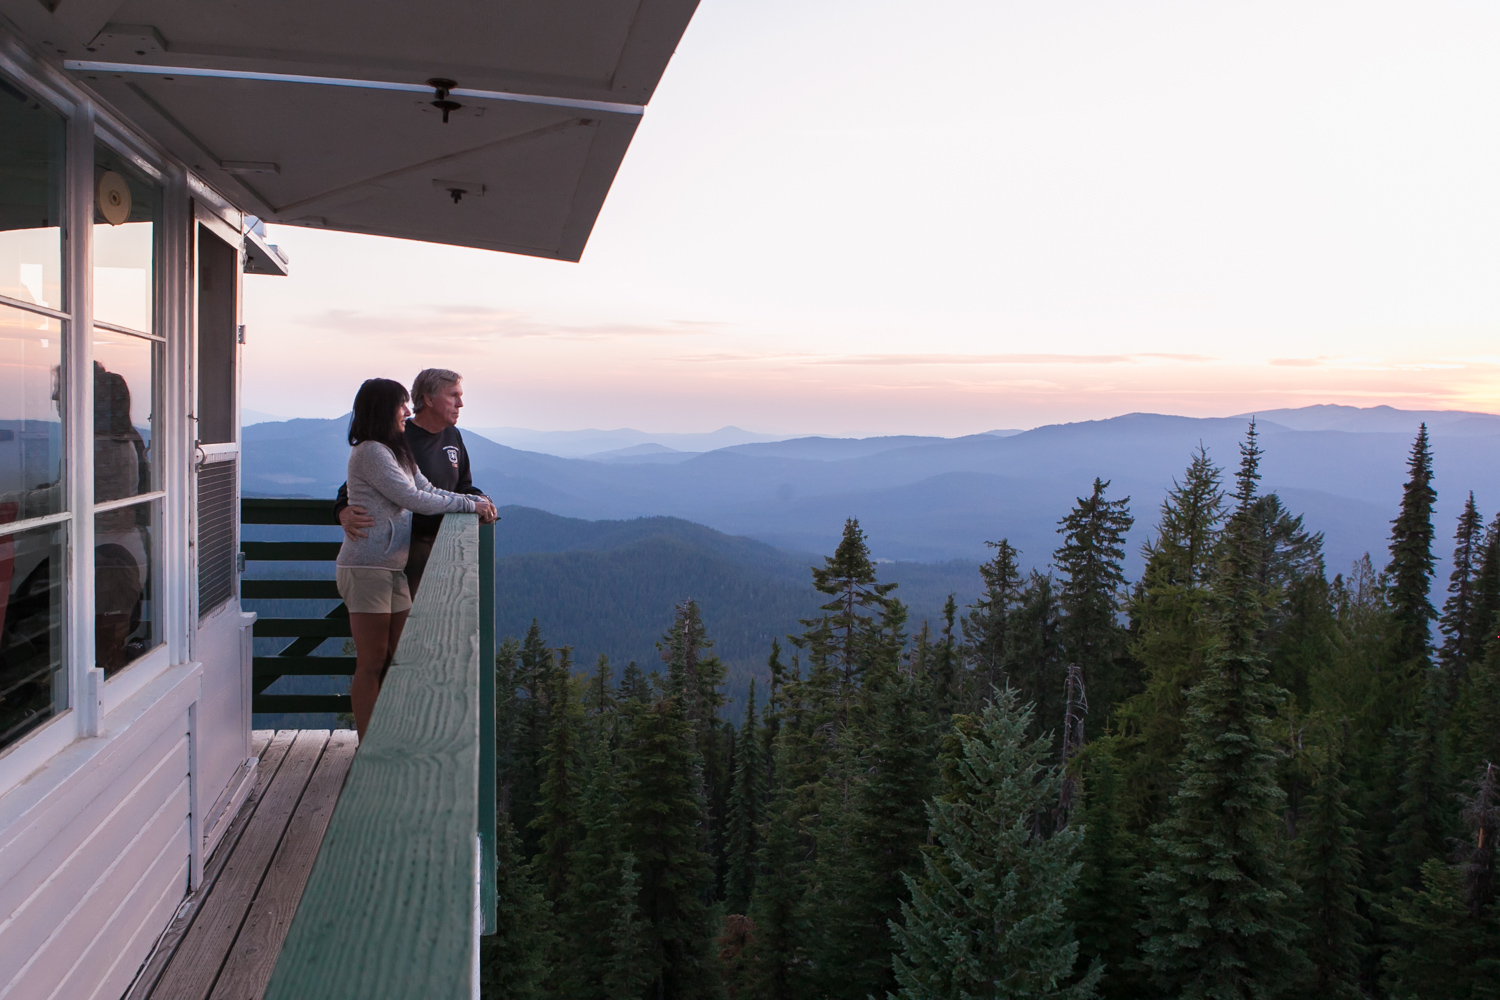 In the fall of 2016, forest fires were wreaking havoc in the southeastern U.S., including the Party Rock Fire in western North Carolina, where retired couple Mike and Nadine Masiello live. Though it burned more than 7,000 acres over three weeks, no structures were lost, thanks to the efforts of hundreds of firefighters, some of whom were flown in from all over the country to help.    The Masiellos wanted to say thank you in a tangible way. They researched volunteer opportunities as fire tower lookouts, and a few weeks later, drove to the Idaho panhandle, where they spent their summer living at 5,000 feet, scanning the horizon for smoke and communicating with firefighters on the ground at the Priest Lake Ranger Station. Until they arrived in Idaho, Mike and Nadine had no idea that some of those very firefighters had flown to North Carolina in the fall to fight the Party Rock Fire. Mike and Nadine's gratitude had not only reached great heights; it had come full circle. (story featured by AARP)